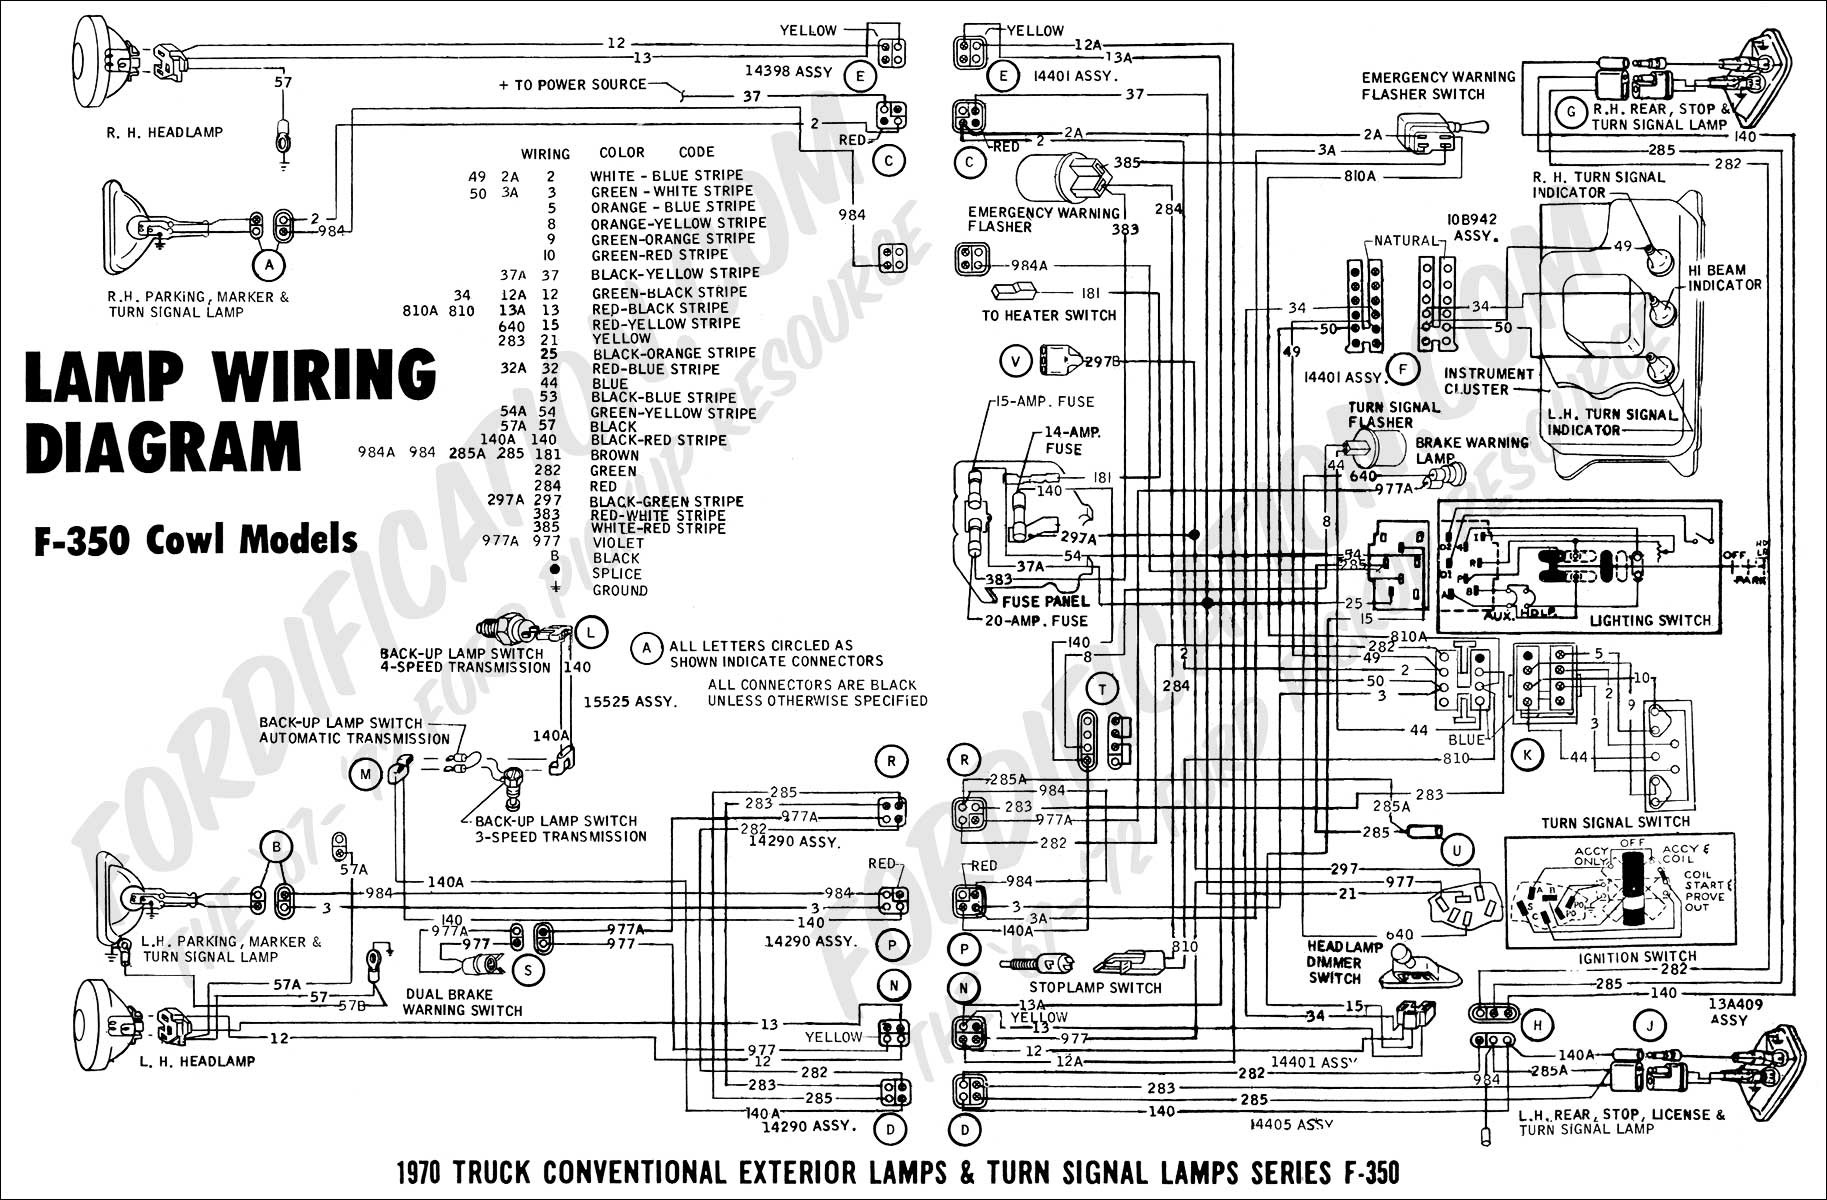 F350 Wiring Diagram Wiring Diagrams Schematics